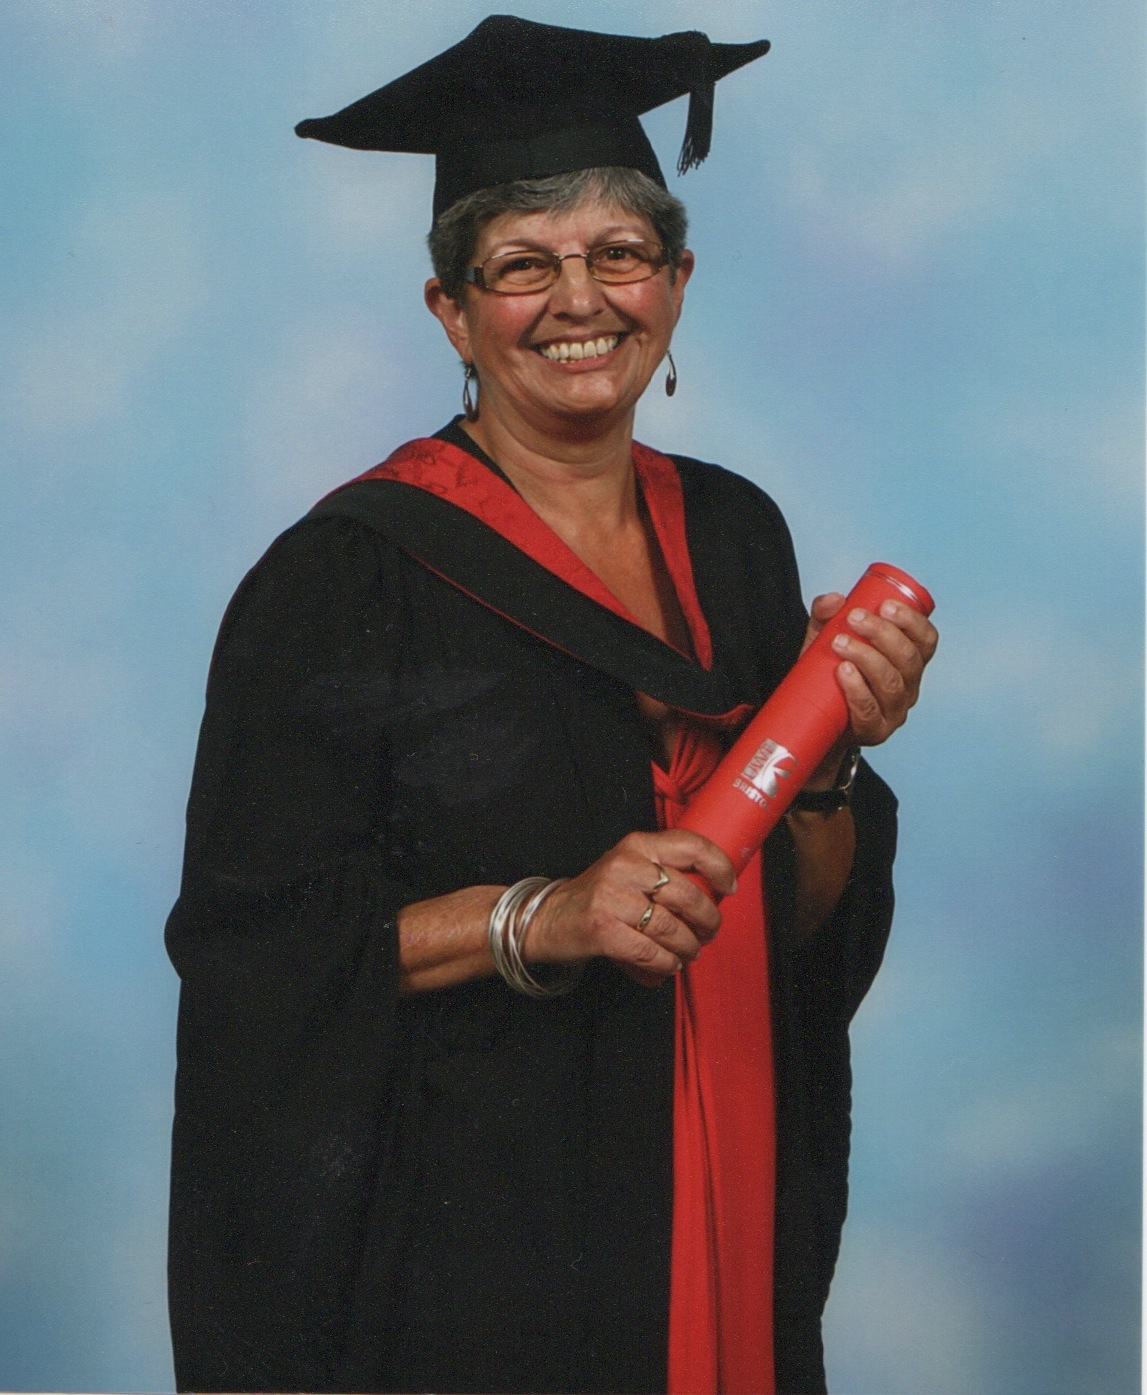 Ab Fab 50: Life After 50: Getting A University Degree. Life As A